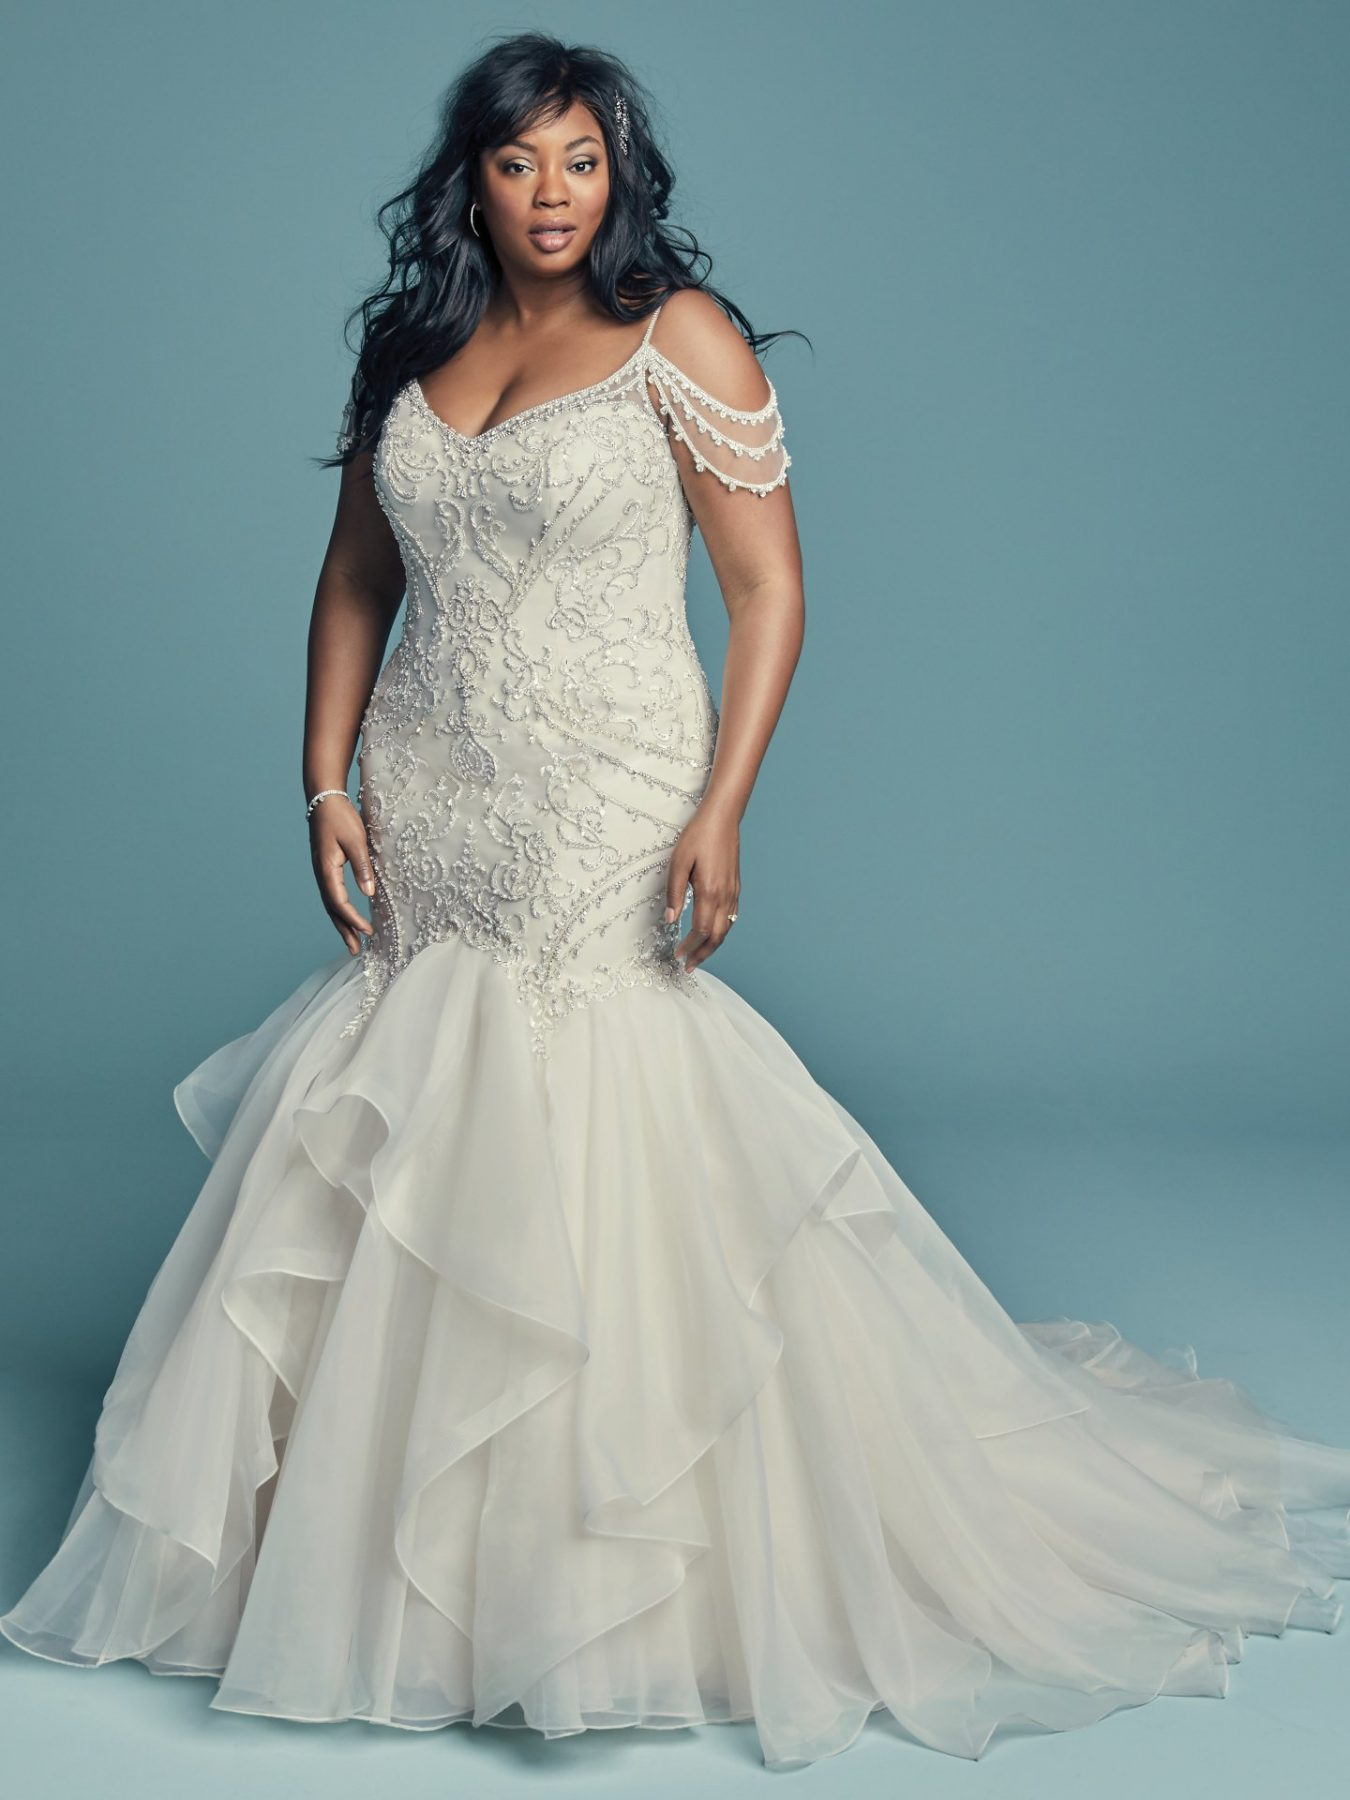 Mermaid cut plus size wedding dress with layered flare skirt